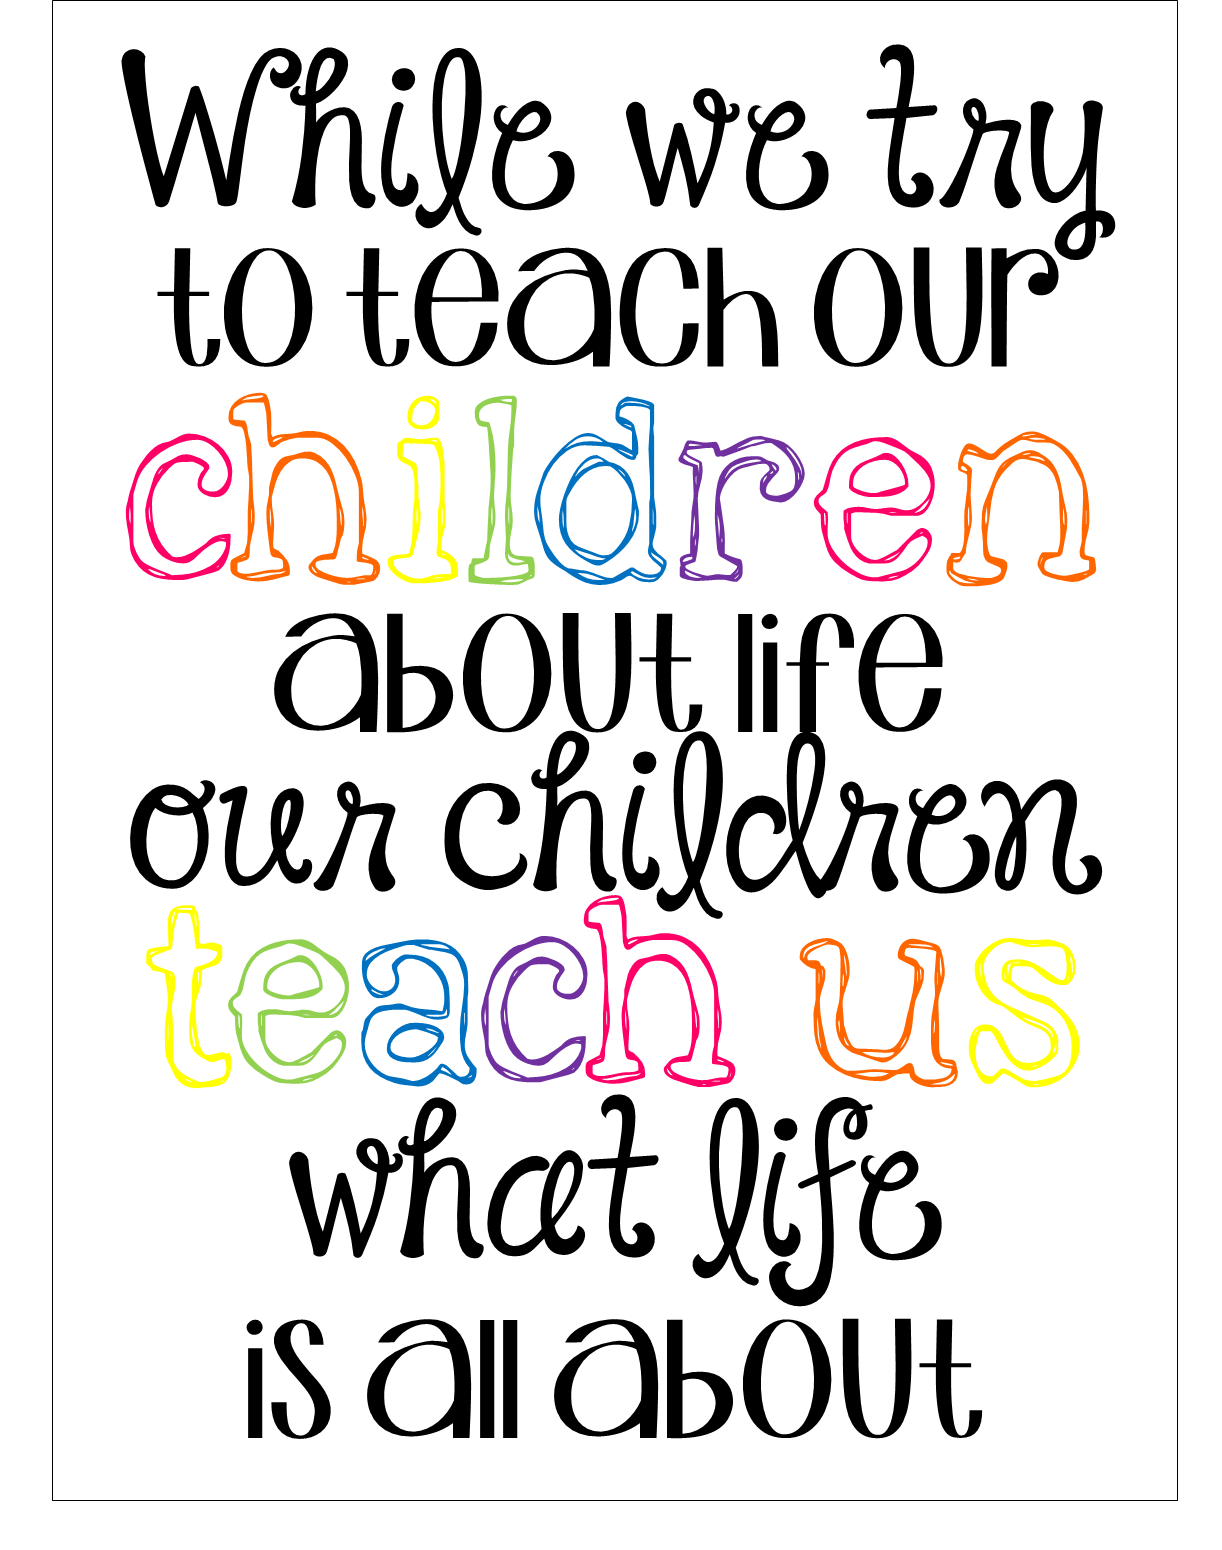 Preschool Teacher Quotes Preschool Teacher Quotes Classy Best 25 Preschool Teacher Quotes